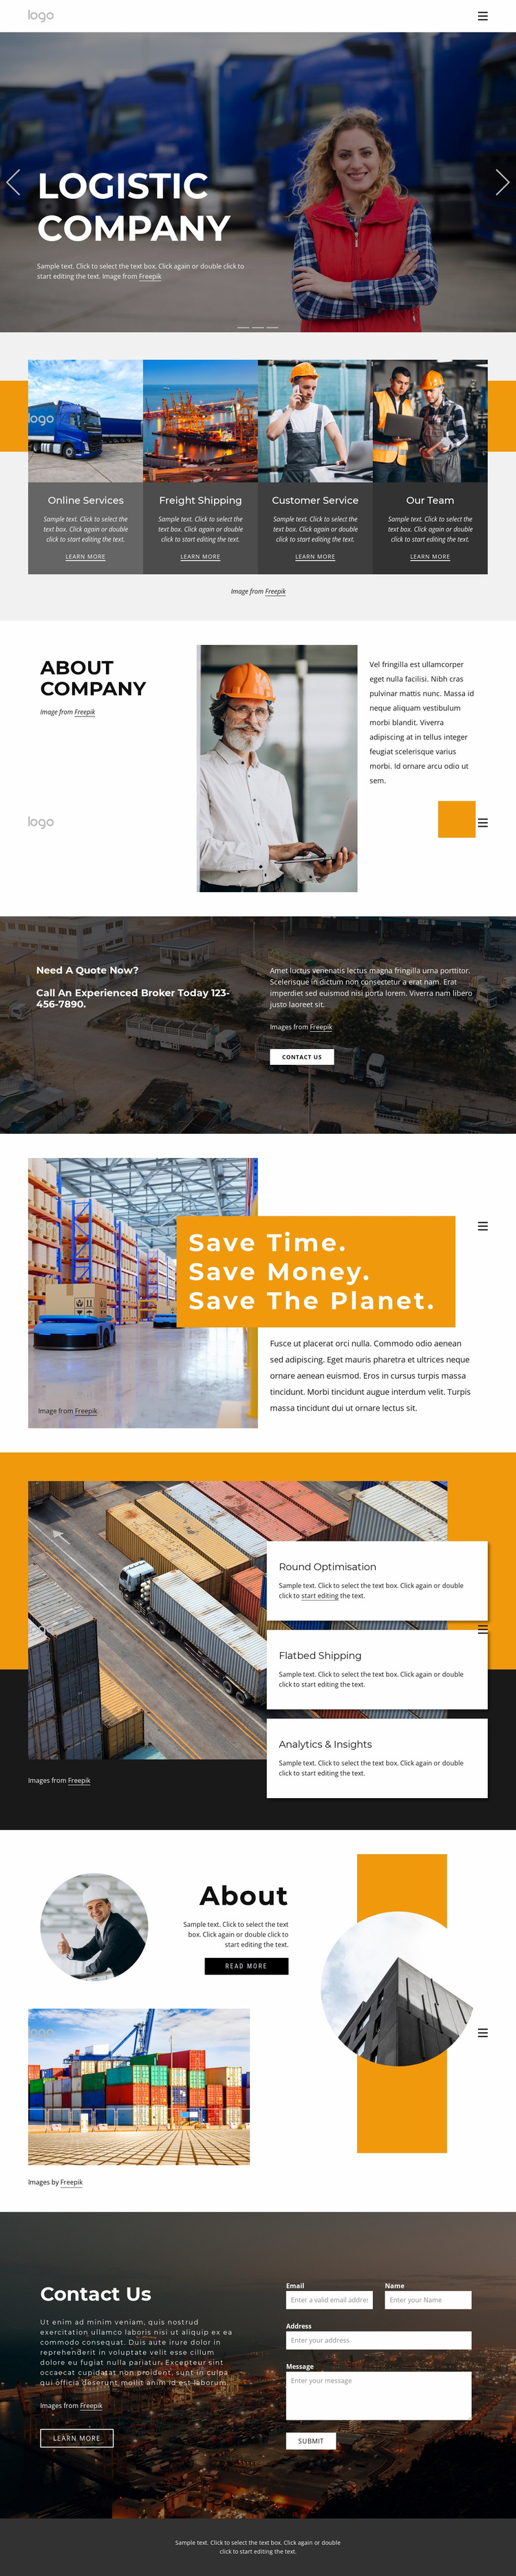 Shipping services and logistics Website Design